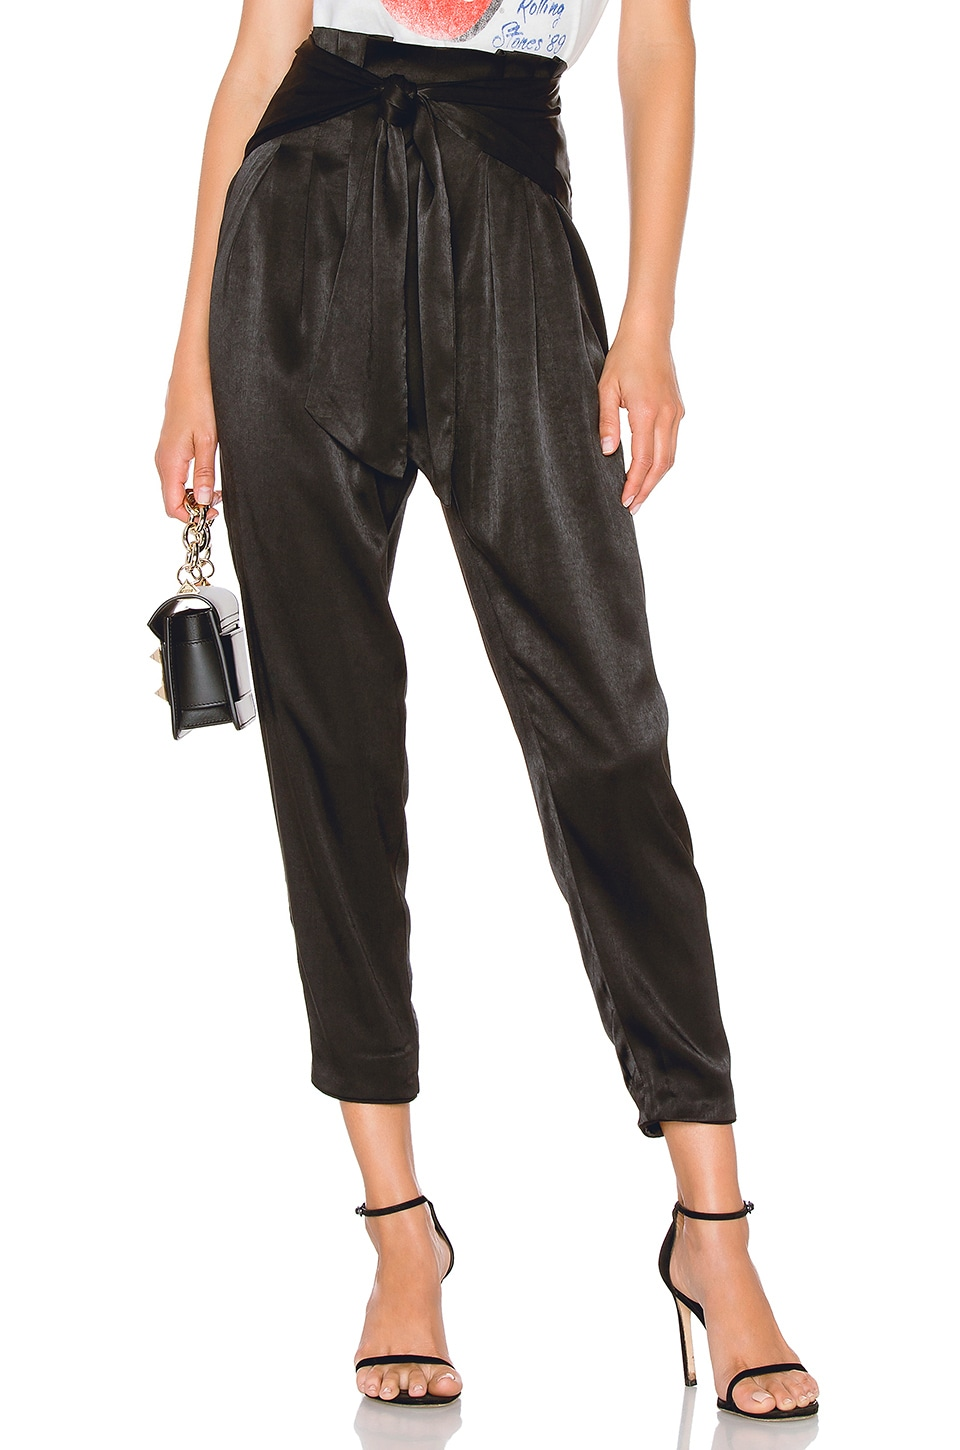 House of Harlow 1960 x REVOLVE Leland Pant in Black